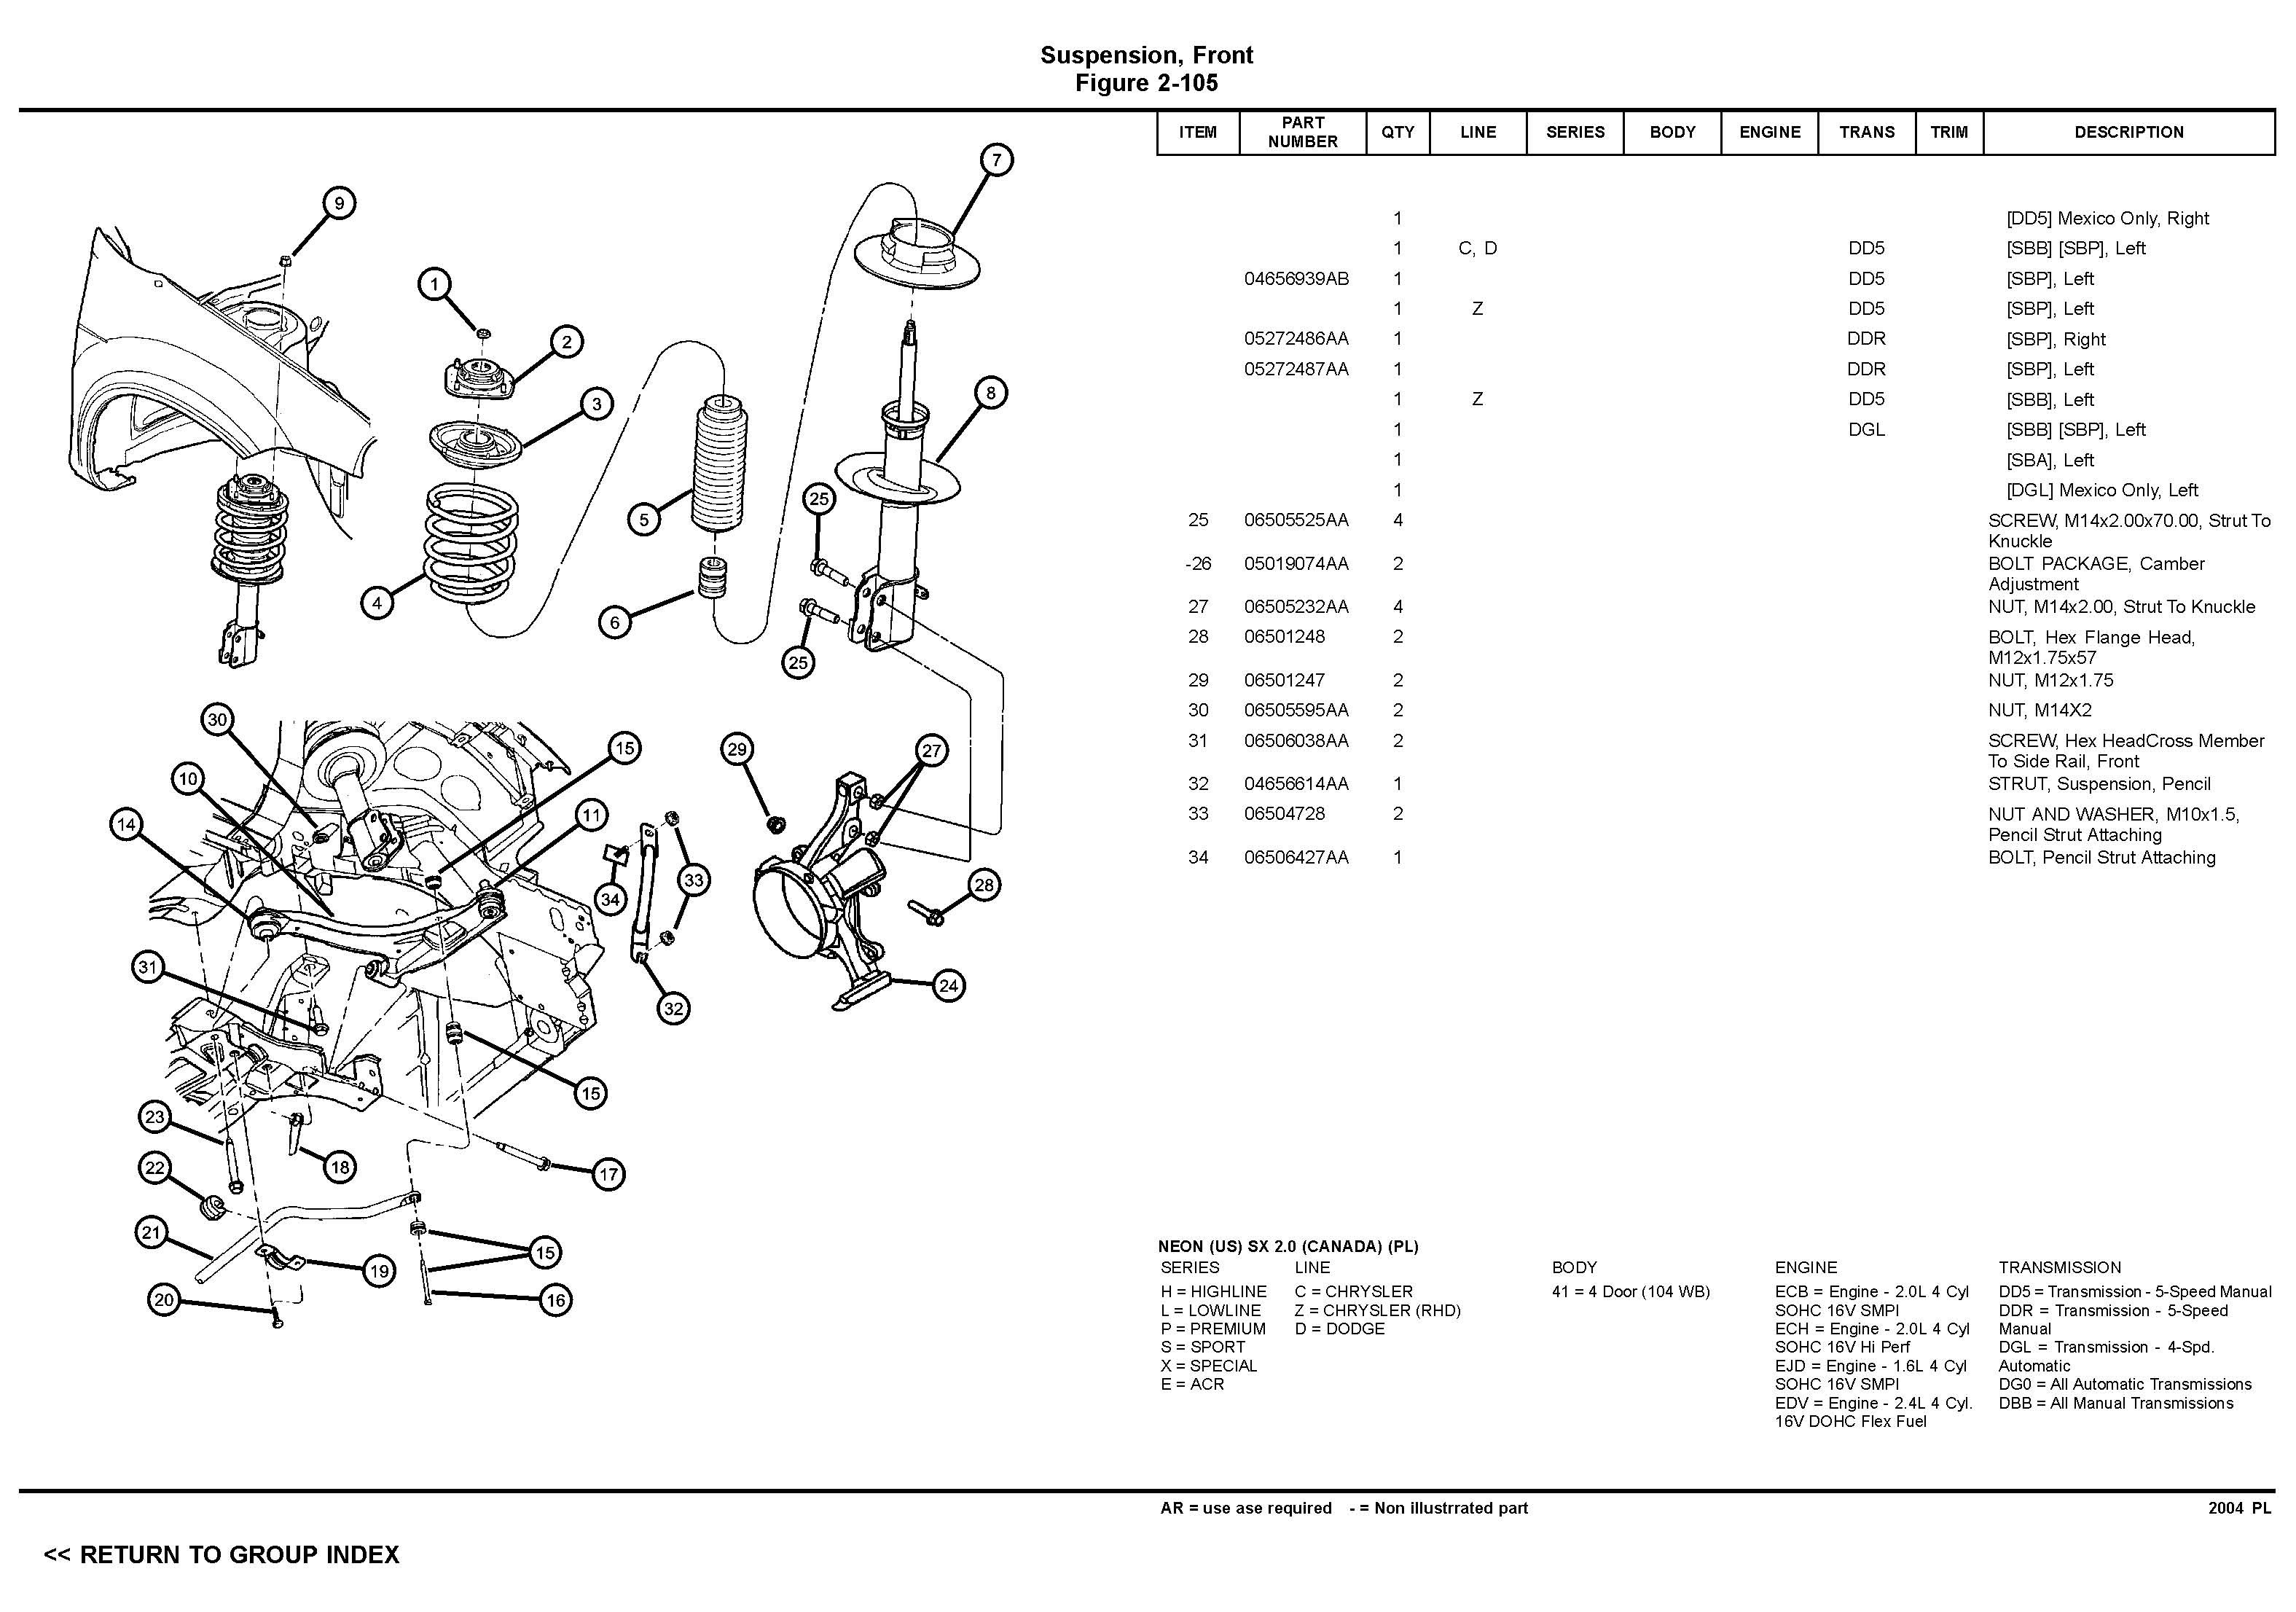 2002 Dodge Neon Engine Diagram Srt 4 Suspension Faq Dodge Srt forum Of 2002  Dodge Neon